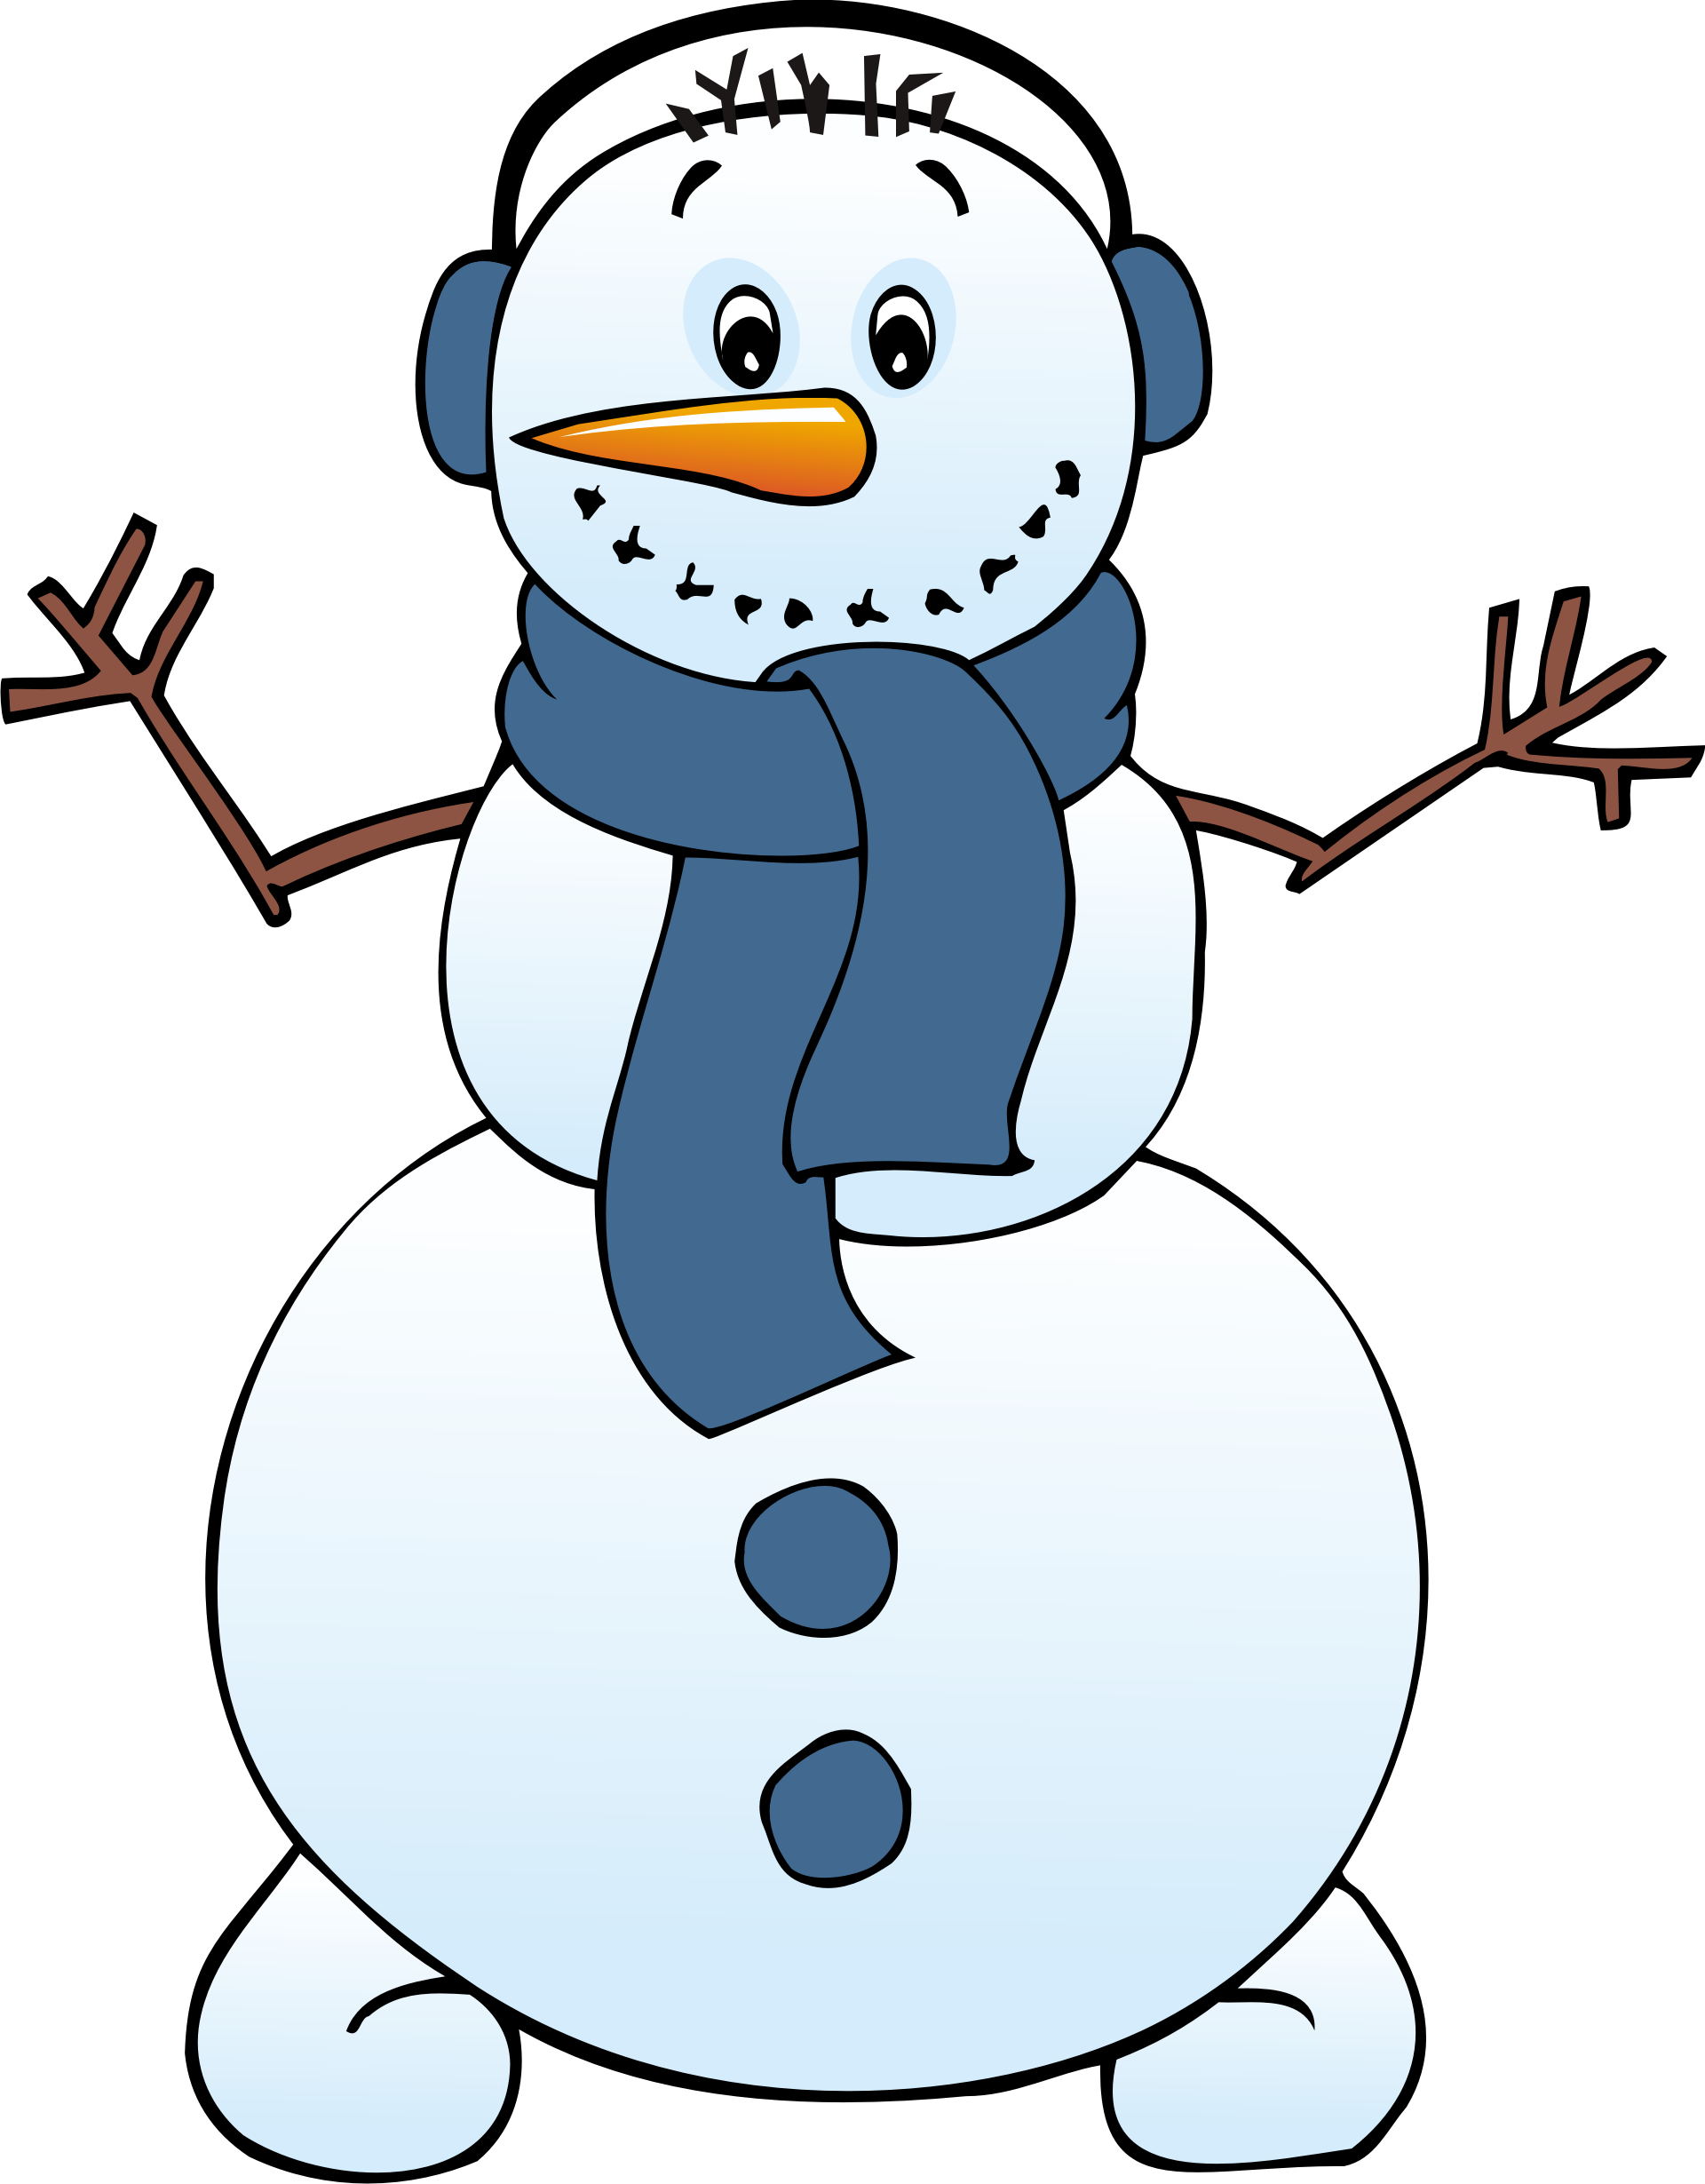 Snowman Scenes Dancing Png - Snowman clipart female, Snowman female Transparent FREE for ...